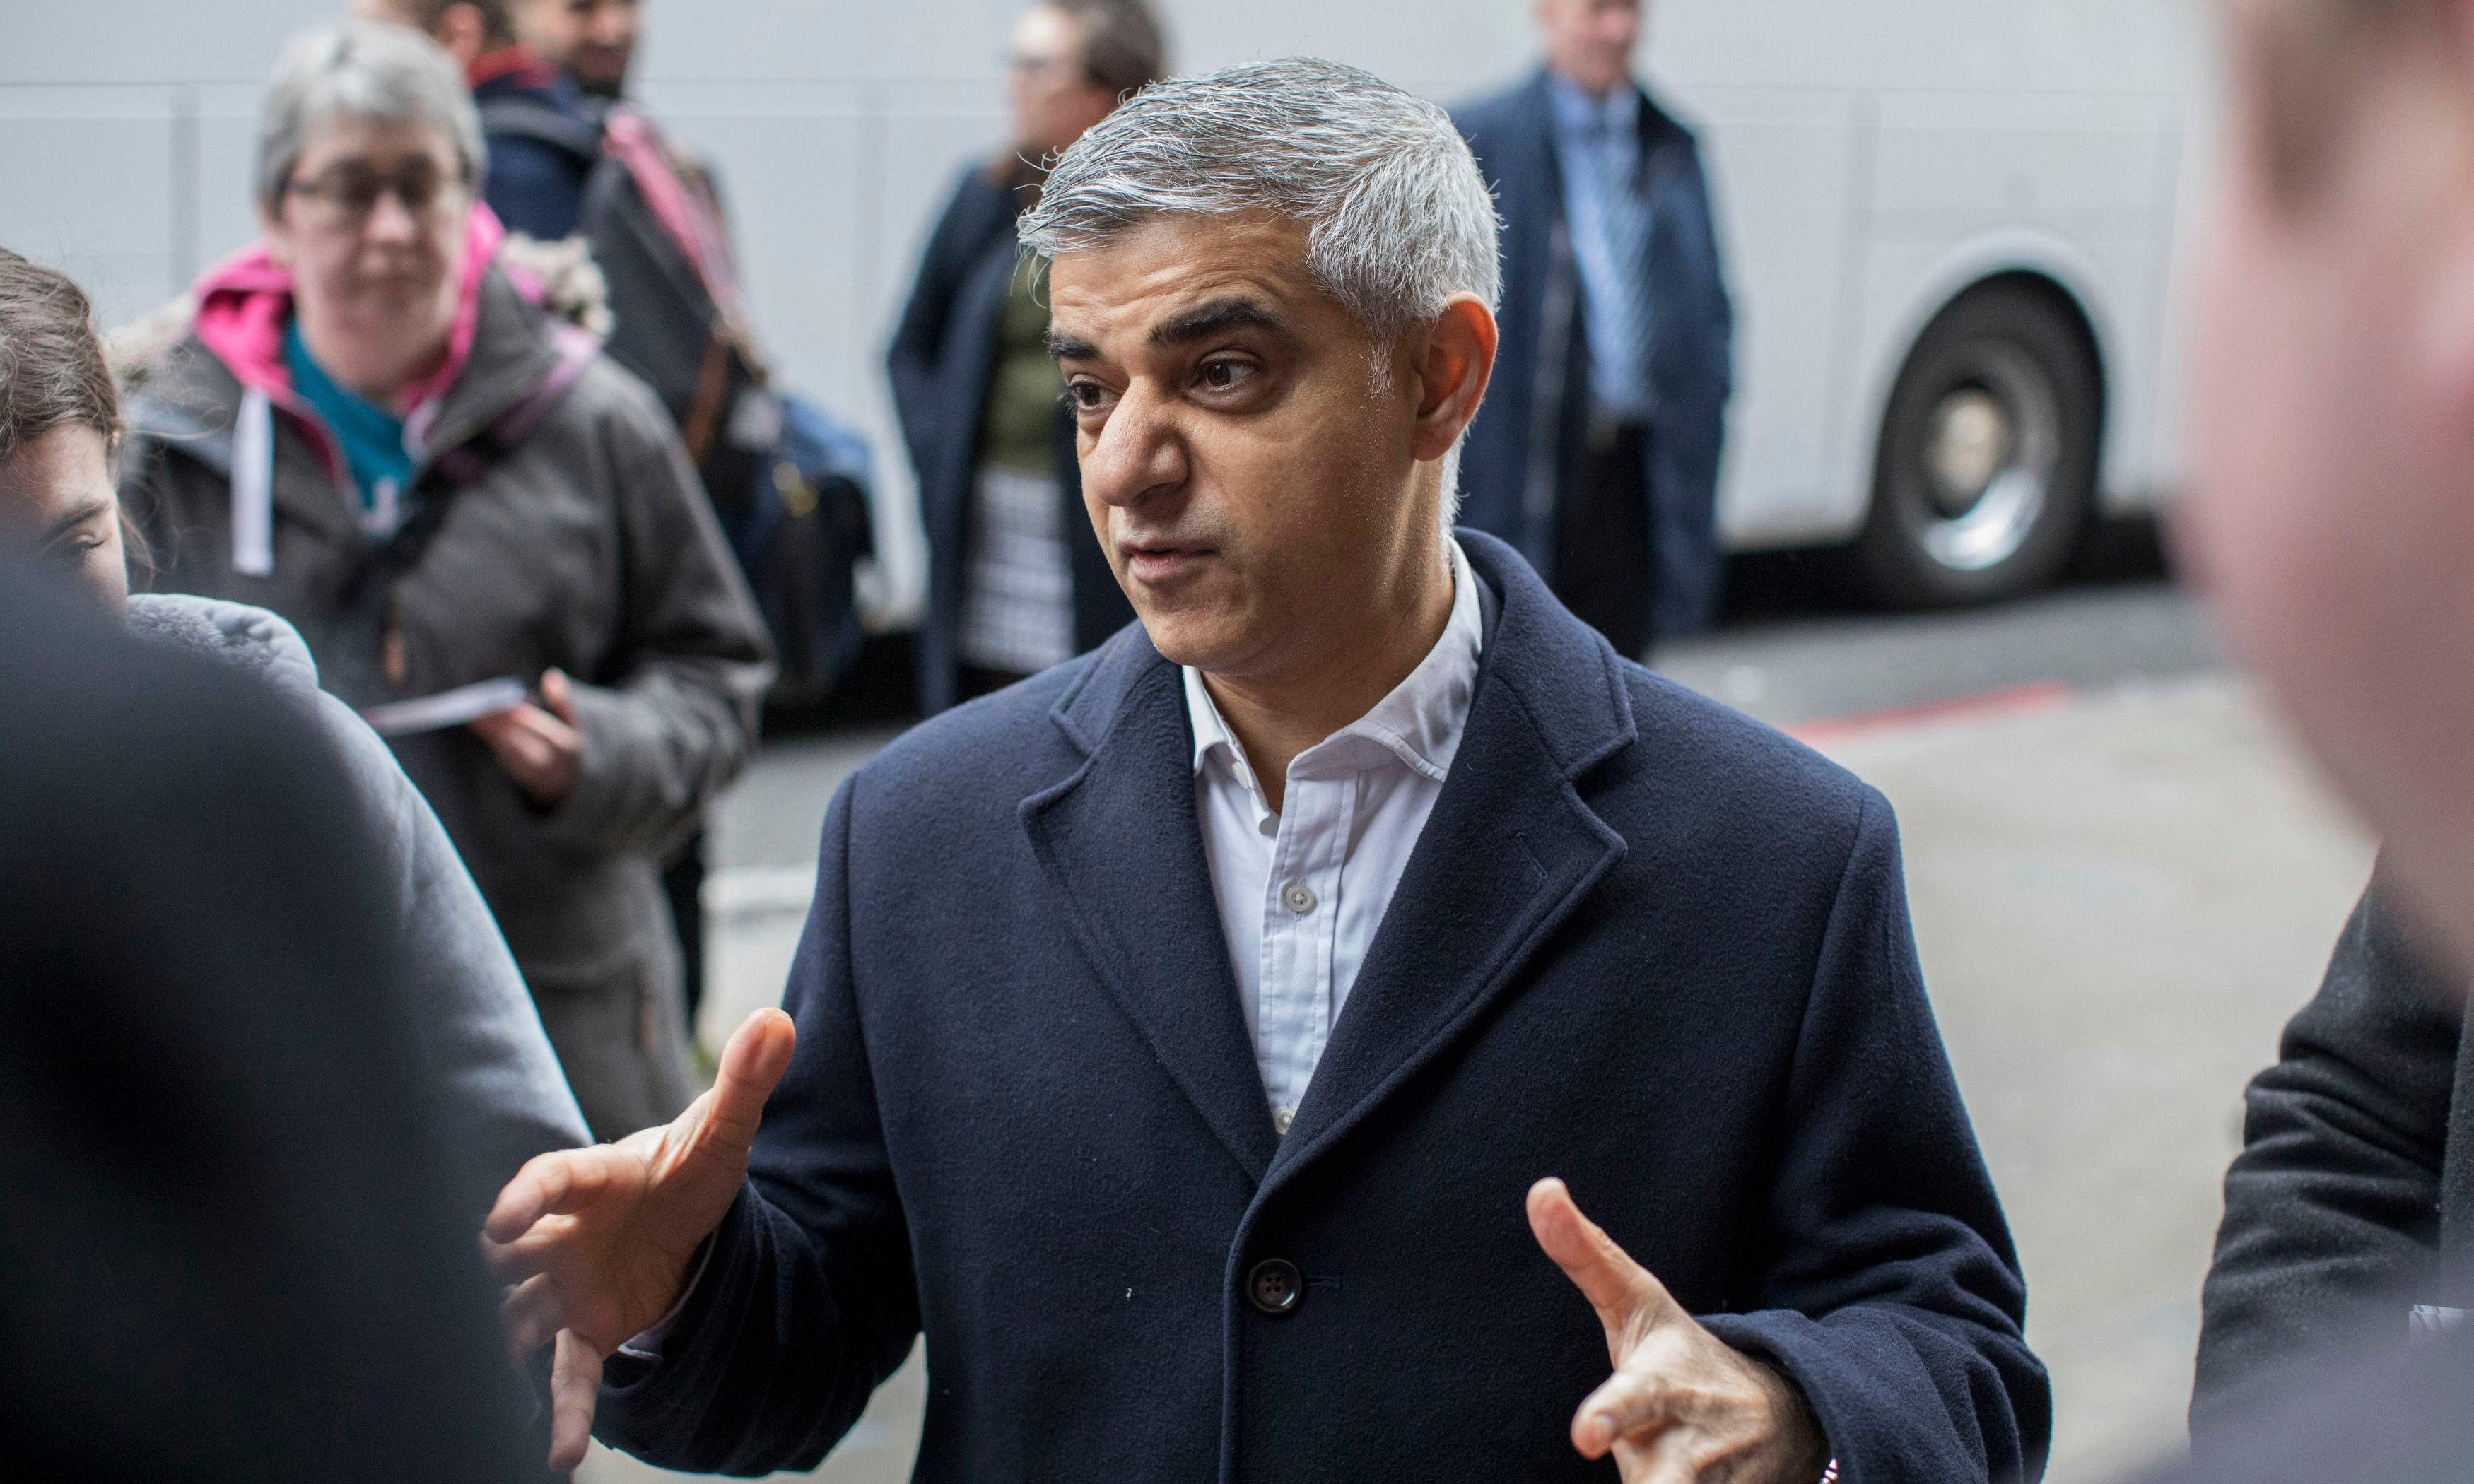 Sadiq Khan vows to make London carbon-neutral by 2030 if re-elected